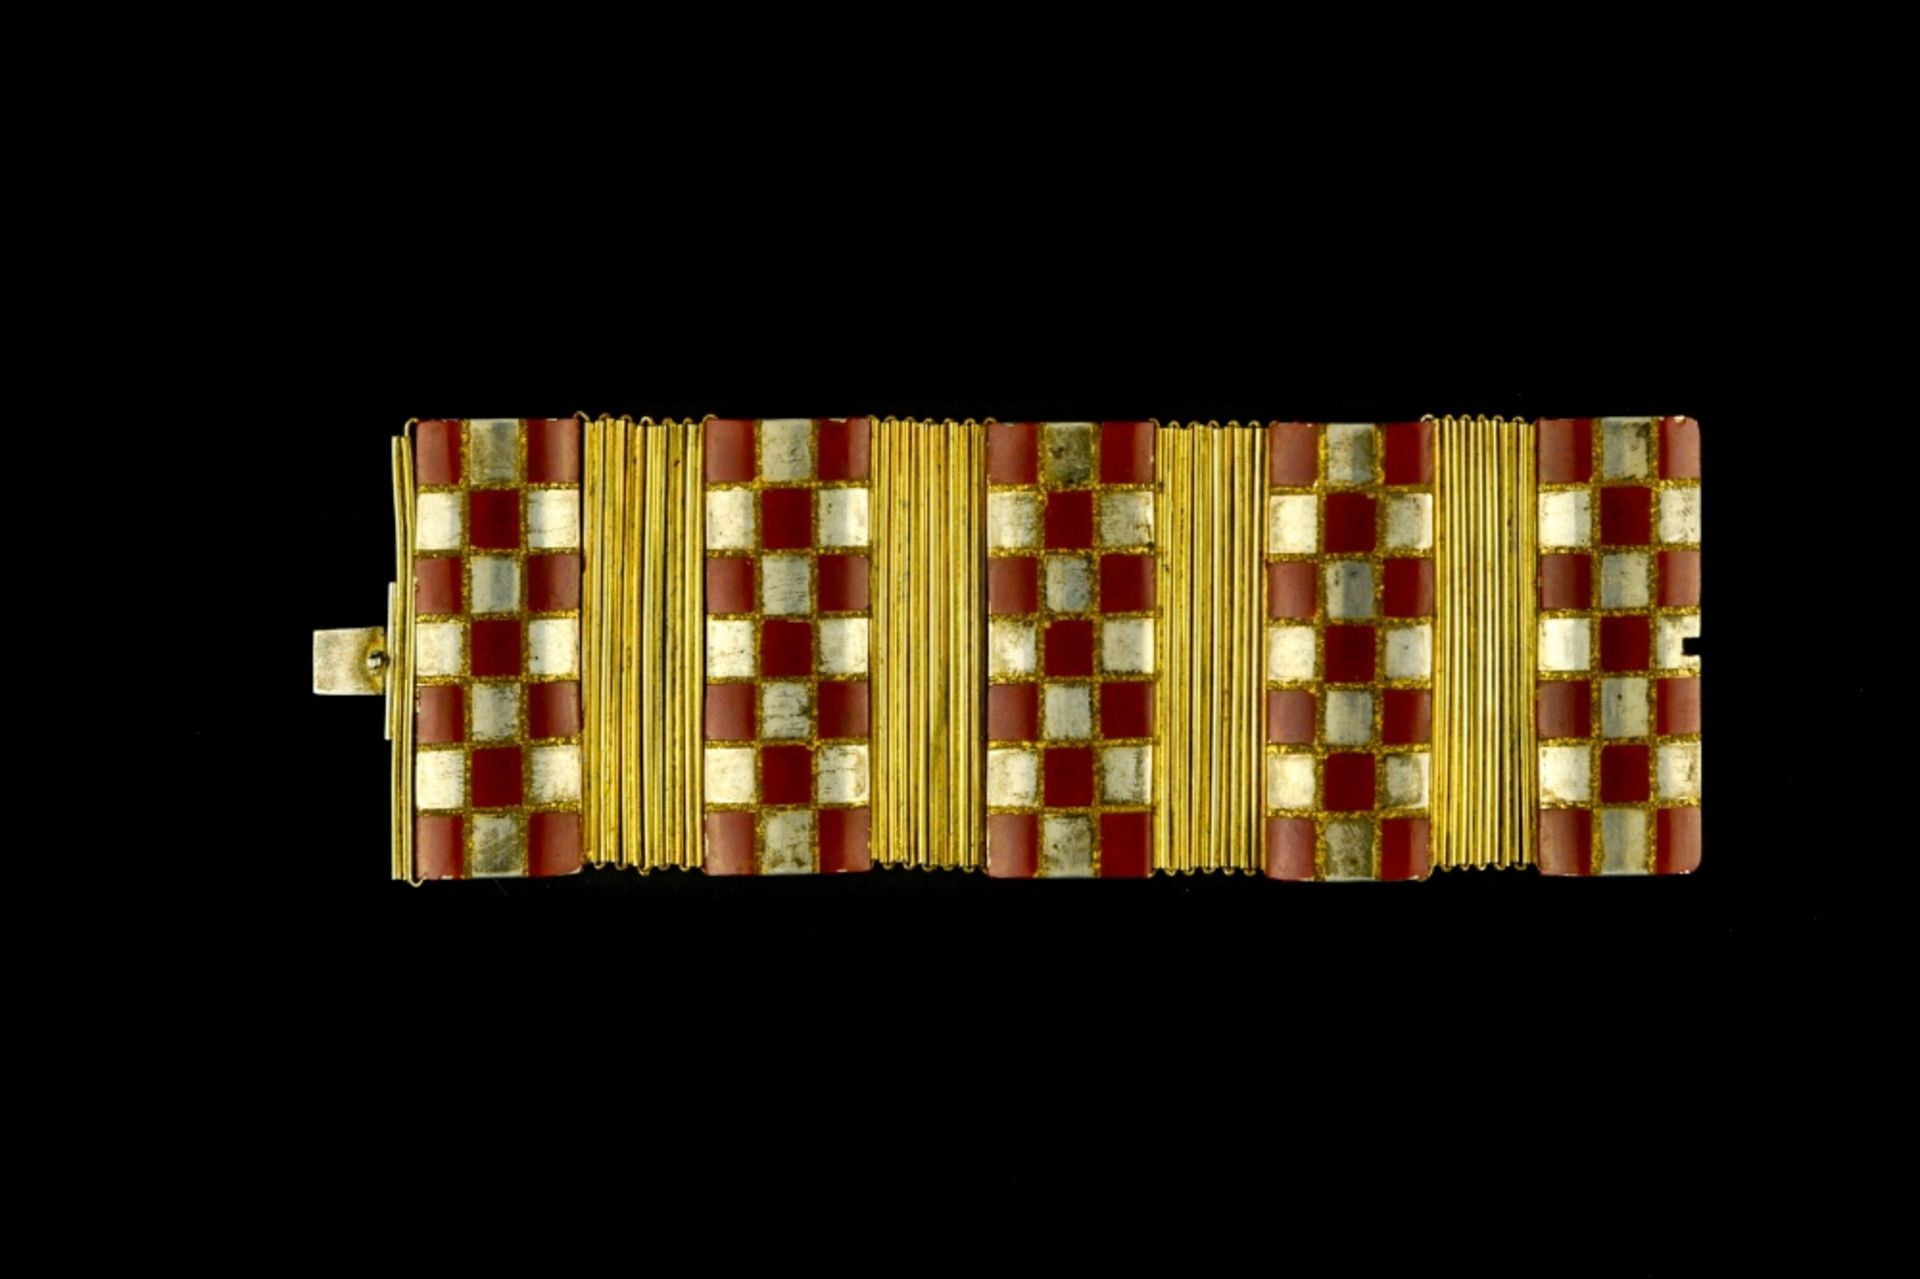 Jean DUNAND (1877 - 1942) Articulated bracelet, ca. 1922 Sterling silver, gilt metal, and red and - Image 2 of 3